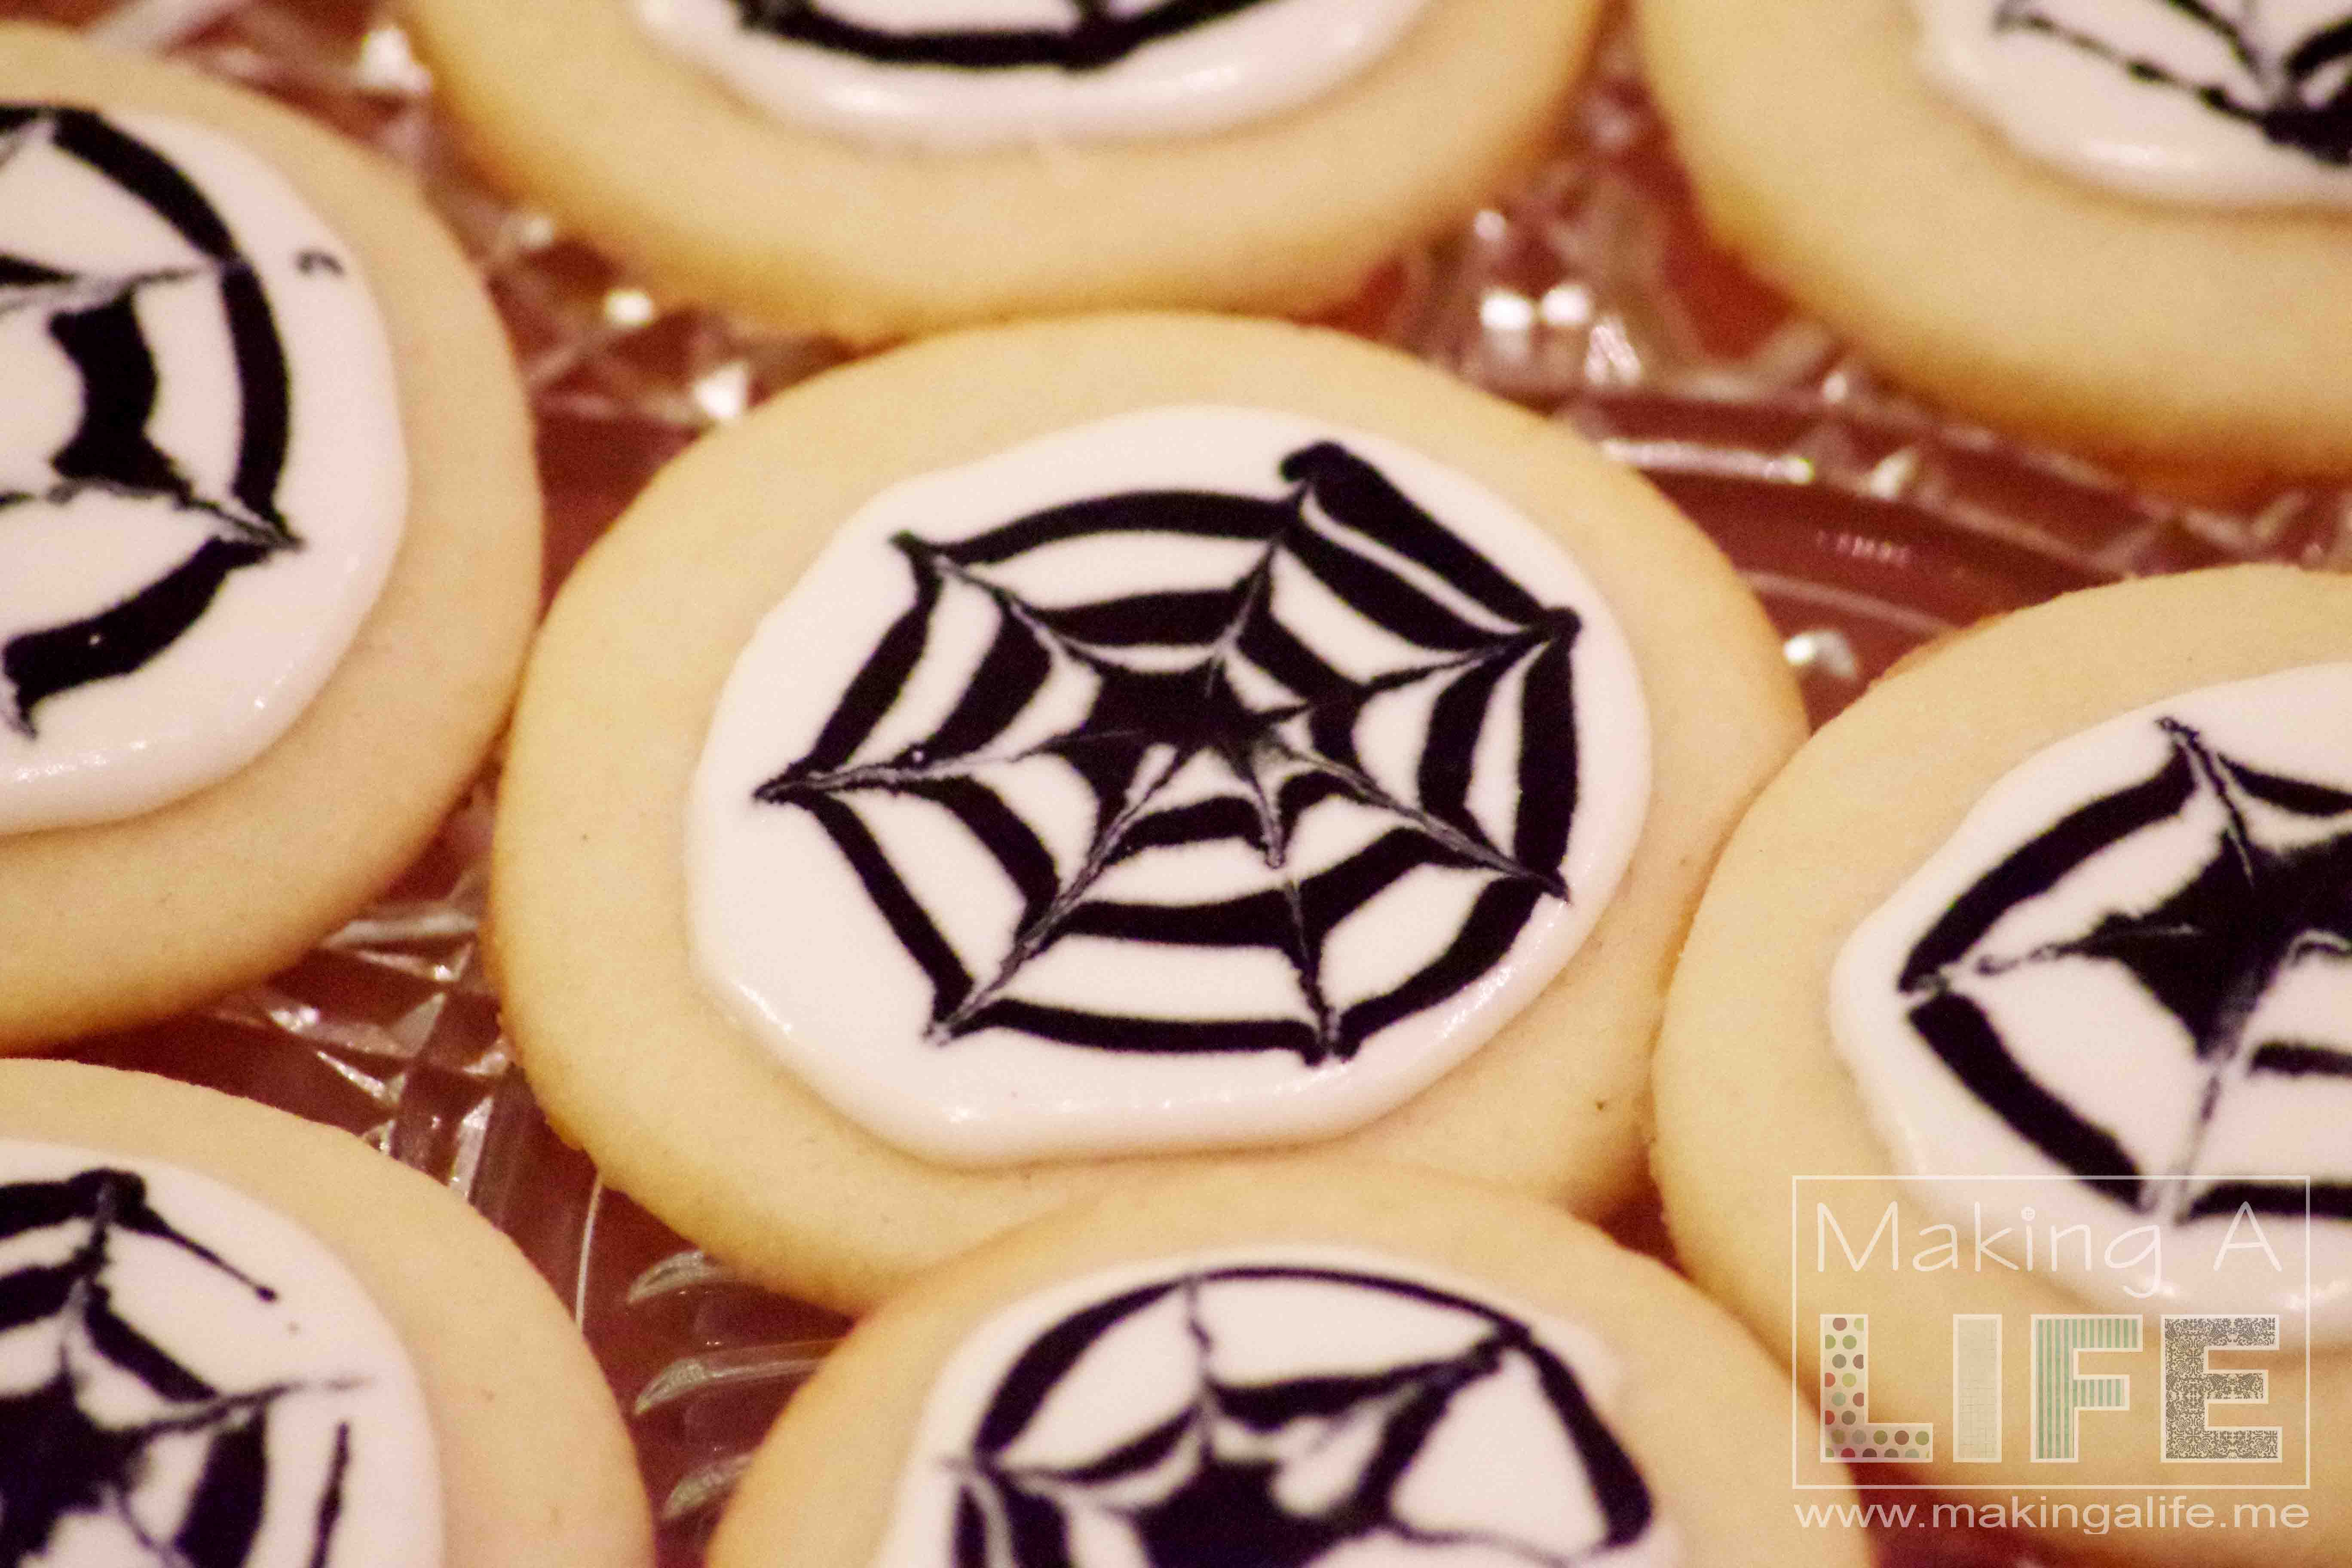 spider-web-cookies-4_making-a-lifespaleksicspider-web-cookies-4_making-a-lifespider-web-cookies-2_making-a-lifespider-web-cookies-4_making-a-lifespider-web-cookies-1_making-a-lifespider-web-cookies-3_making-a-lifespider-web-cookies-5_making-a-lifePumpkinsMummybrain cupcakes